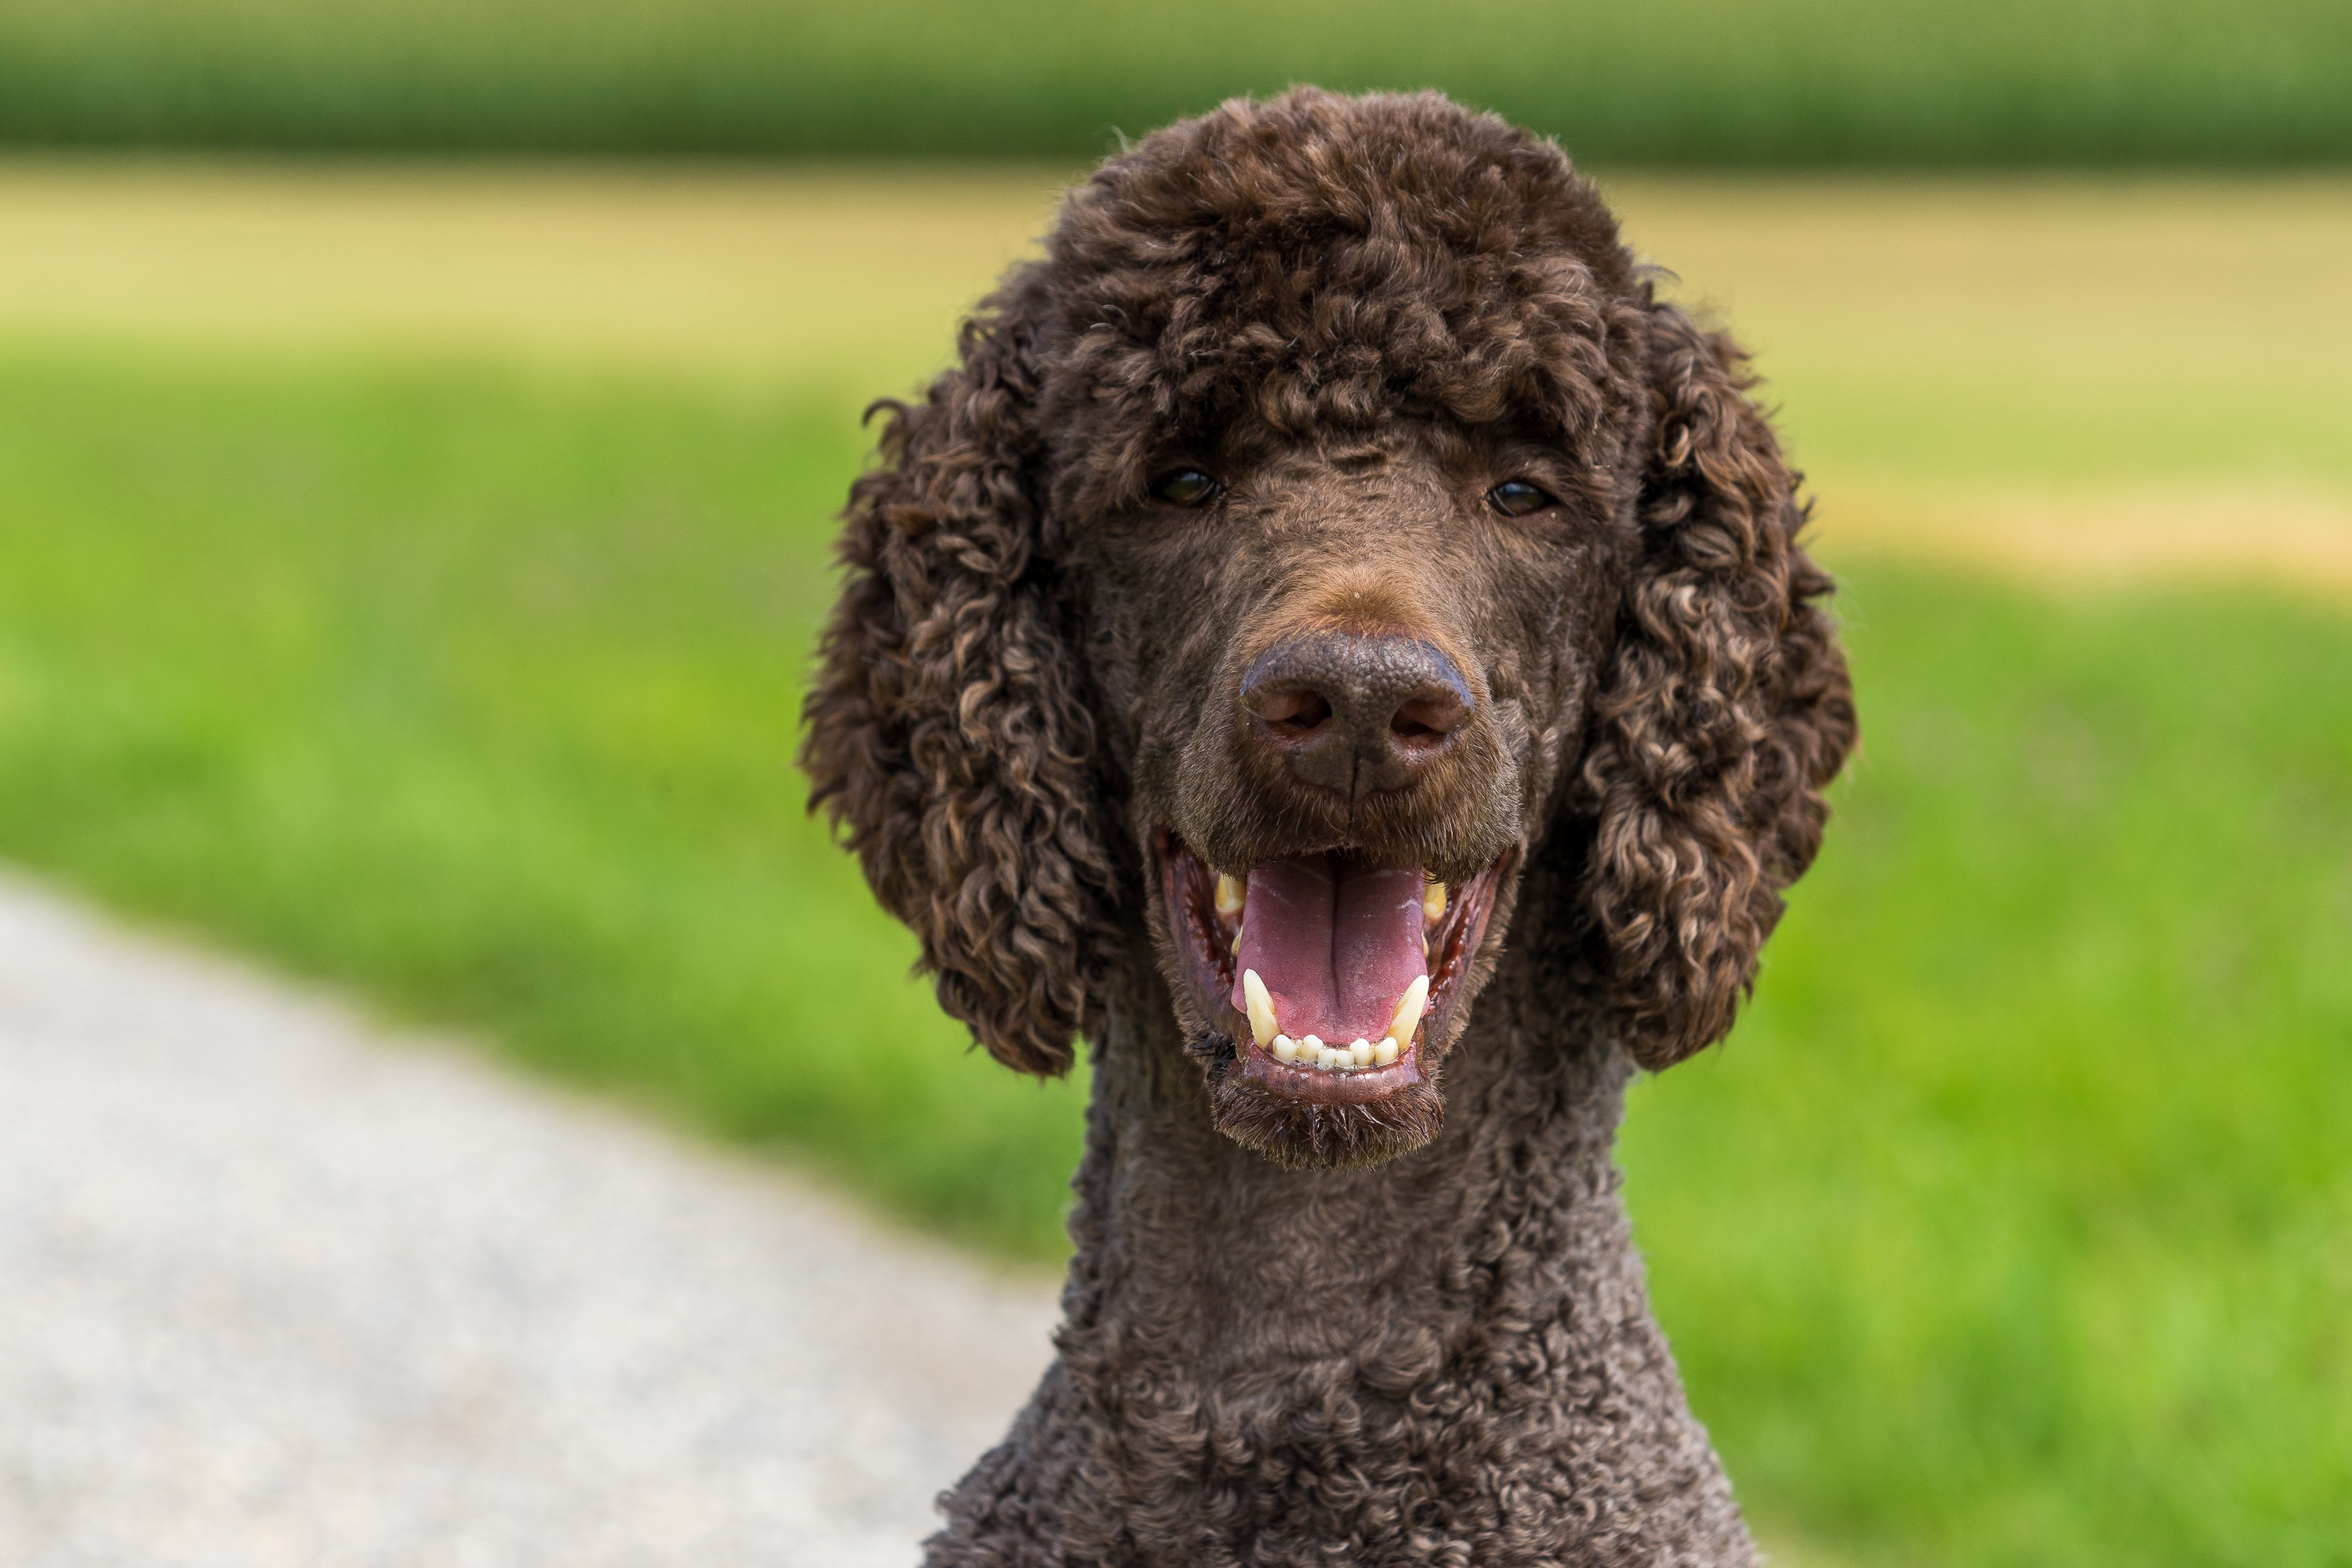 Picture Poodle Dogs blurred background Head Staring Animals dog Bokeh Glance animal